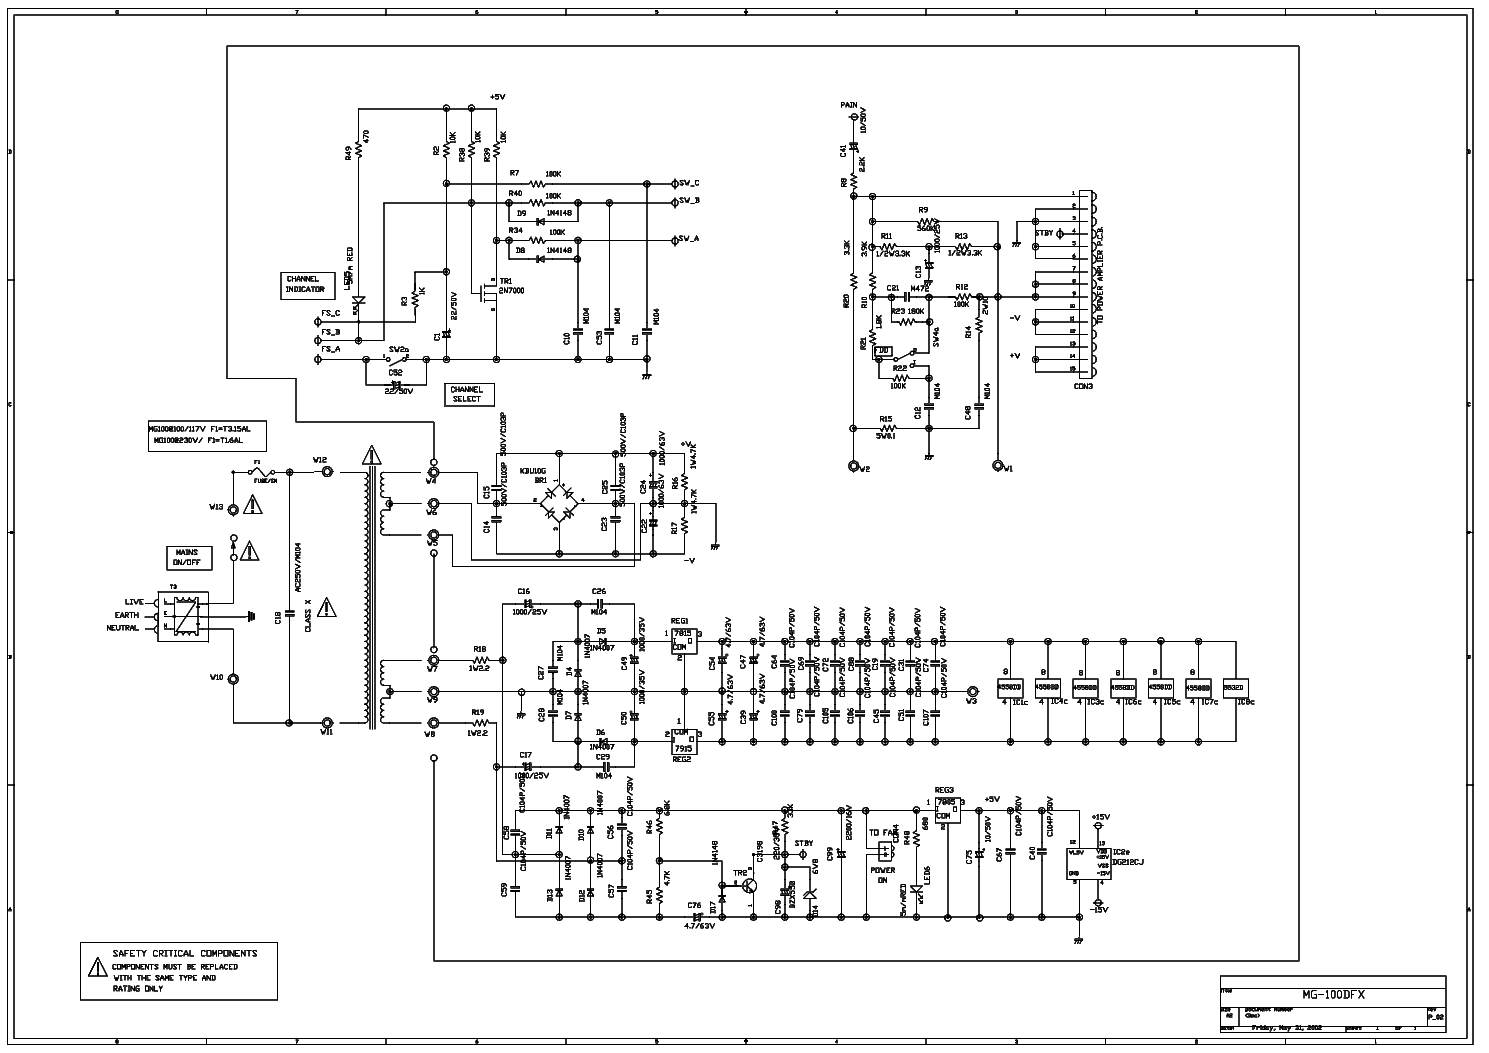 MARSHALL MG100DFX SCH Service Manual download, schematics